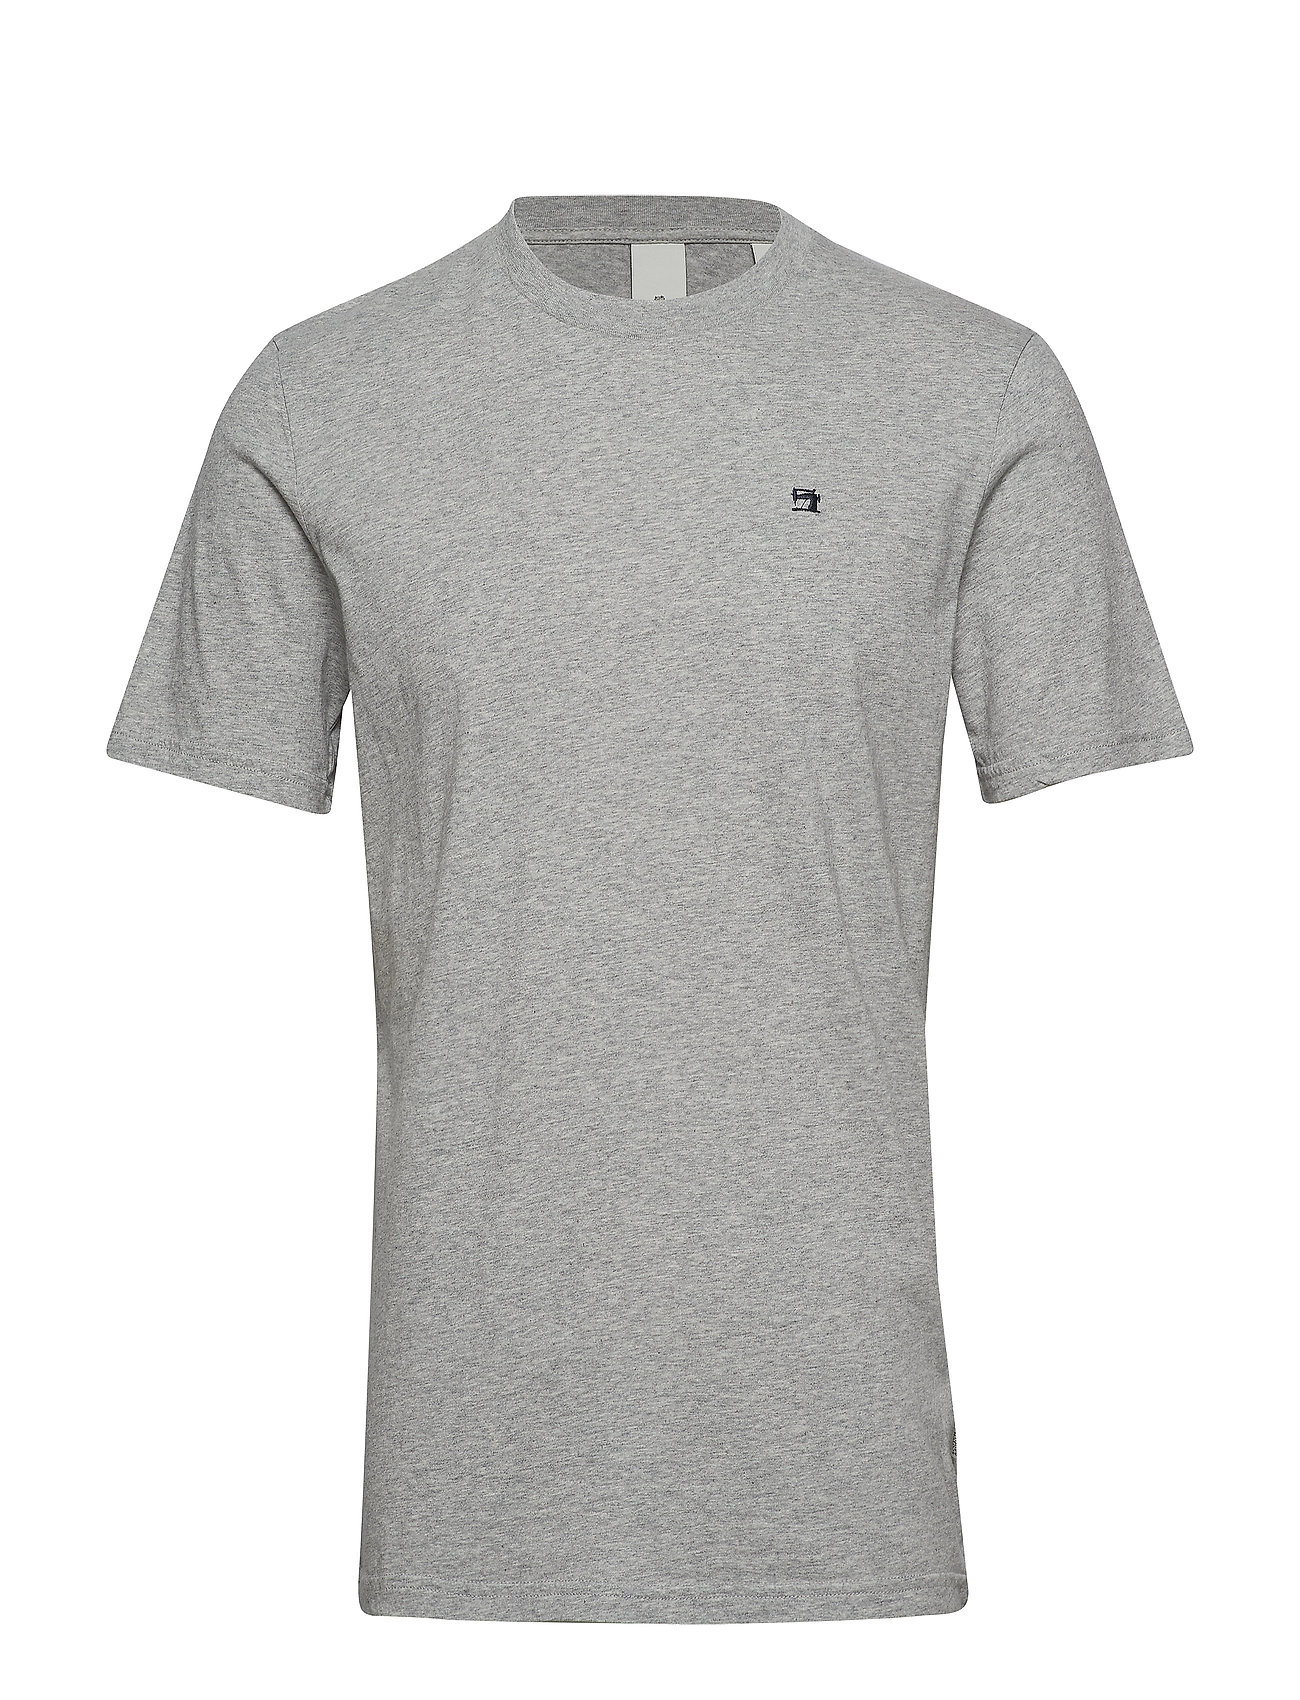 Scotch & Soda Cotton tee with wider neck rib - GREY MELANGE